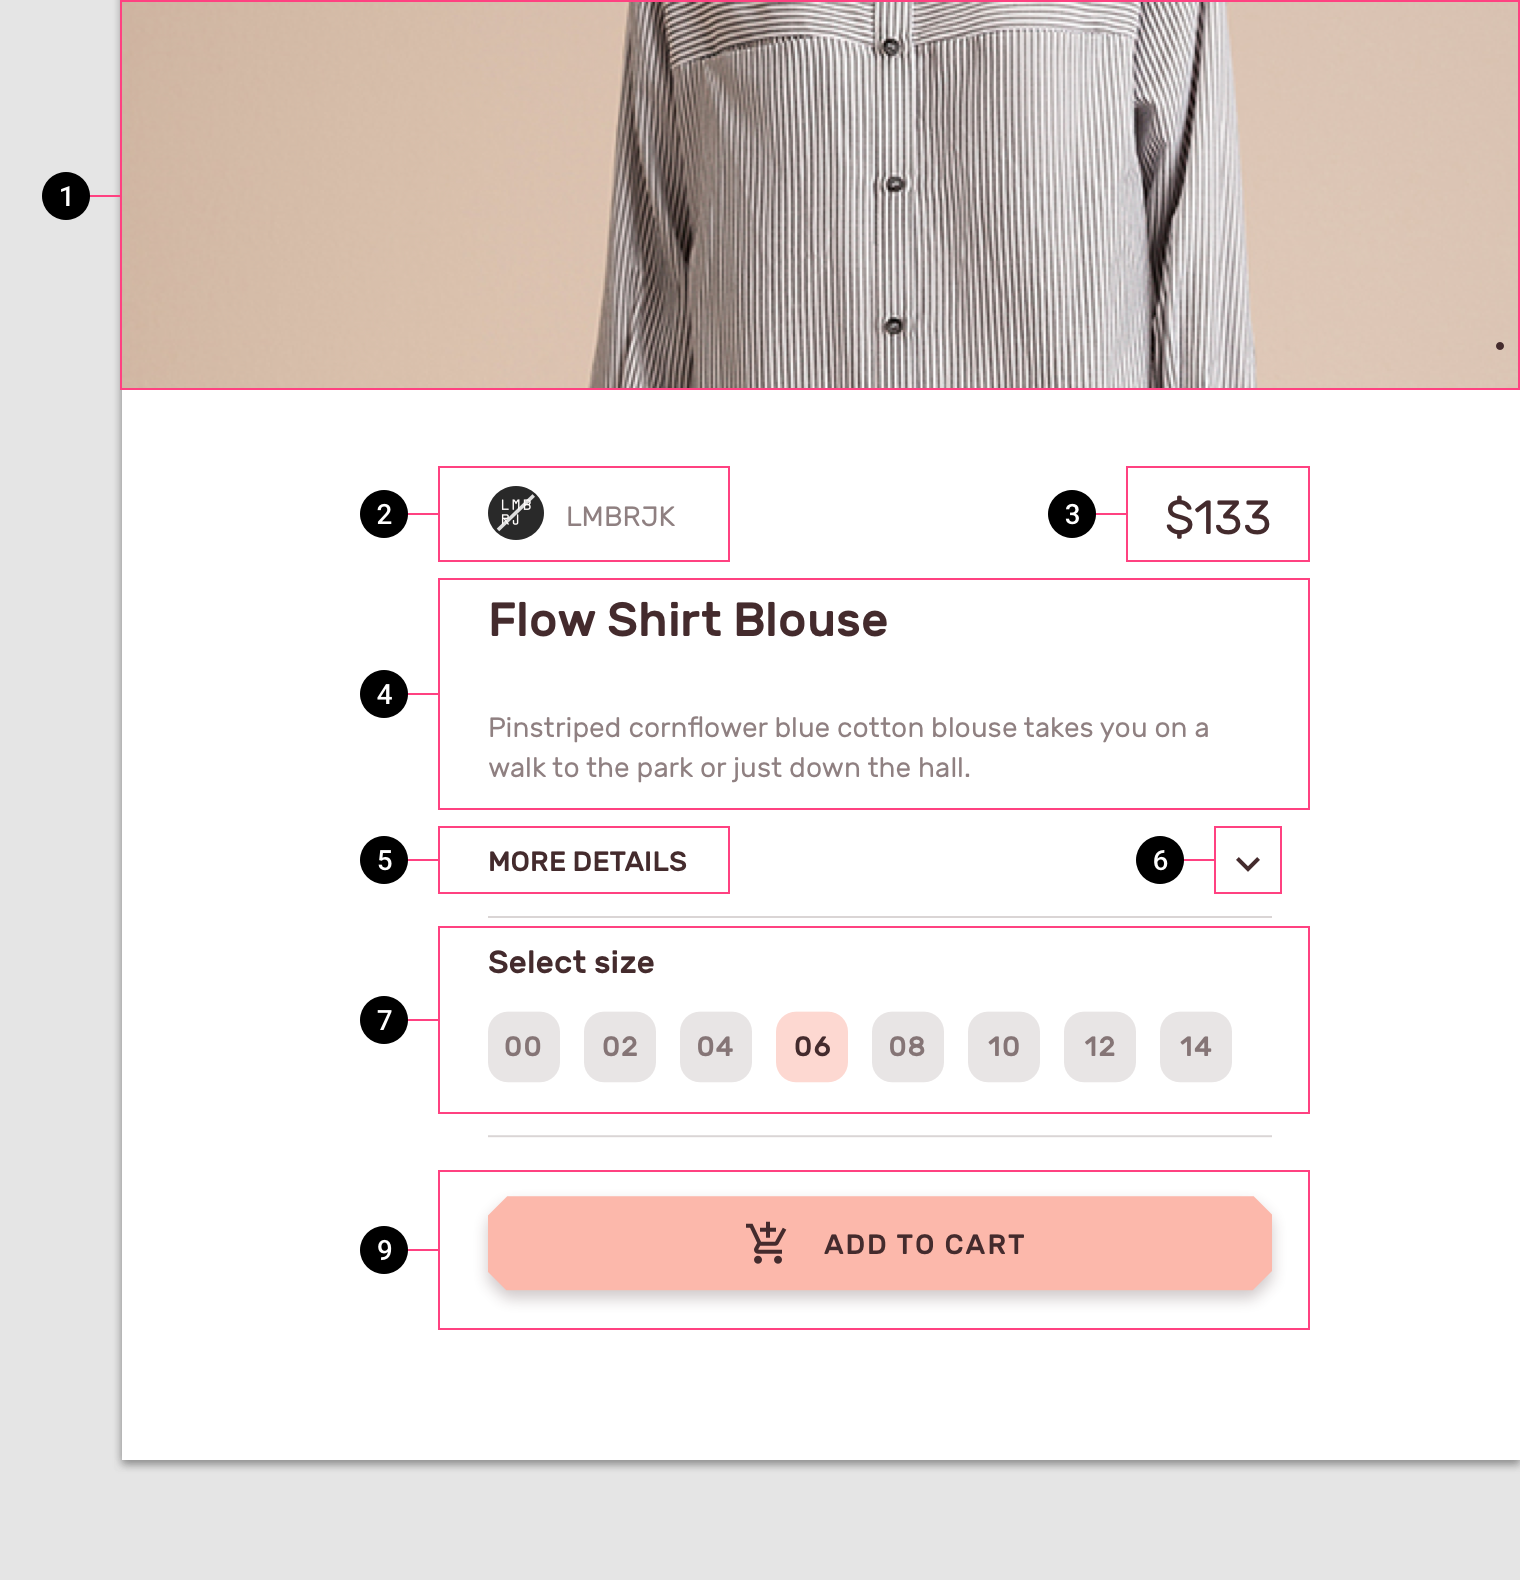 Accessibility - Material Design